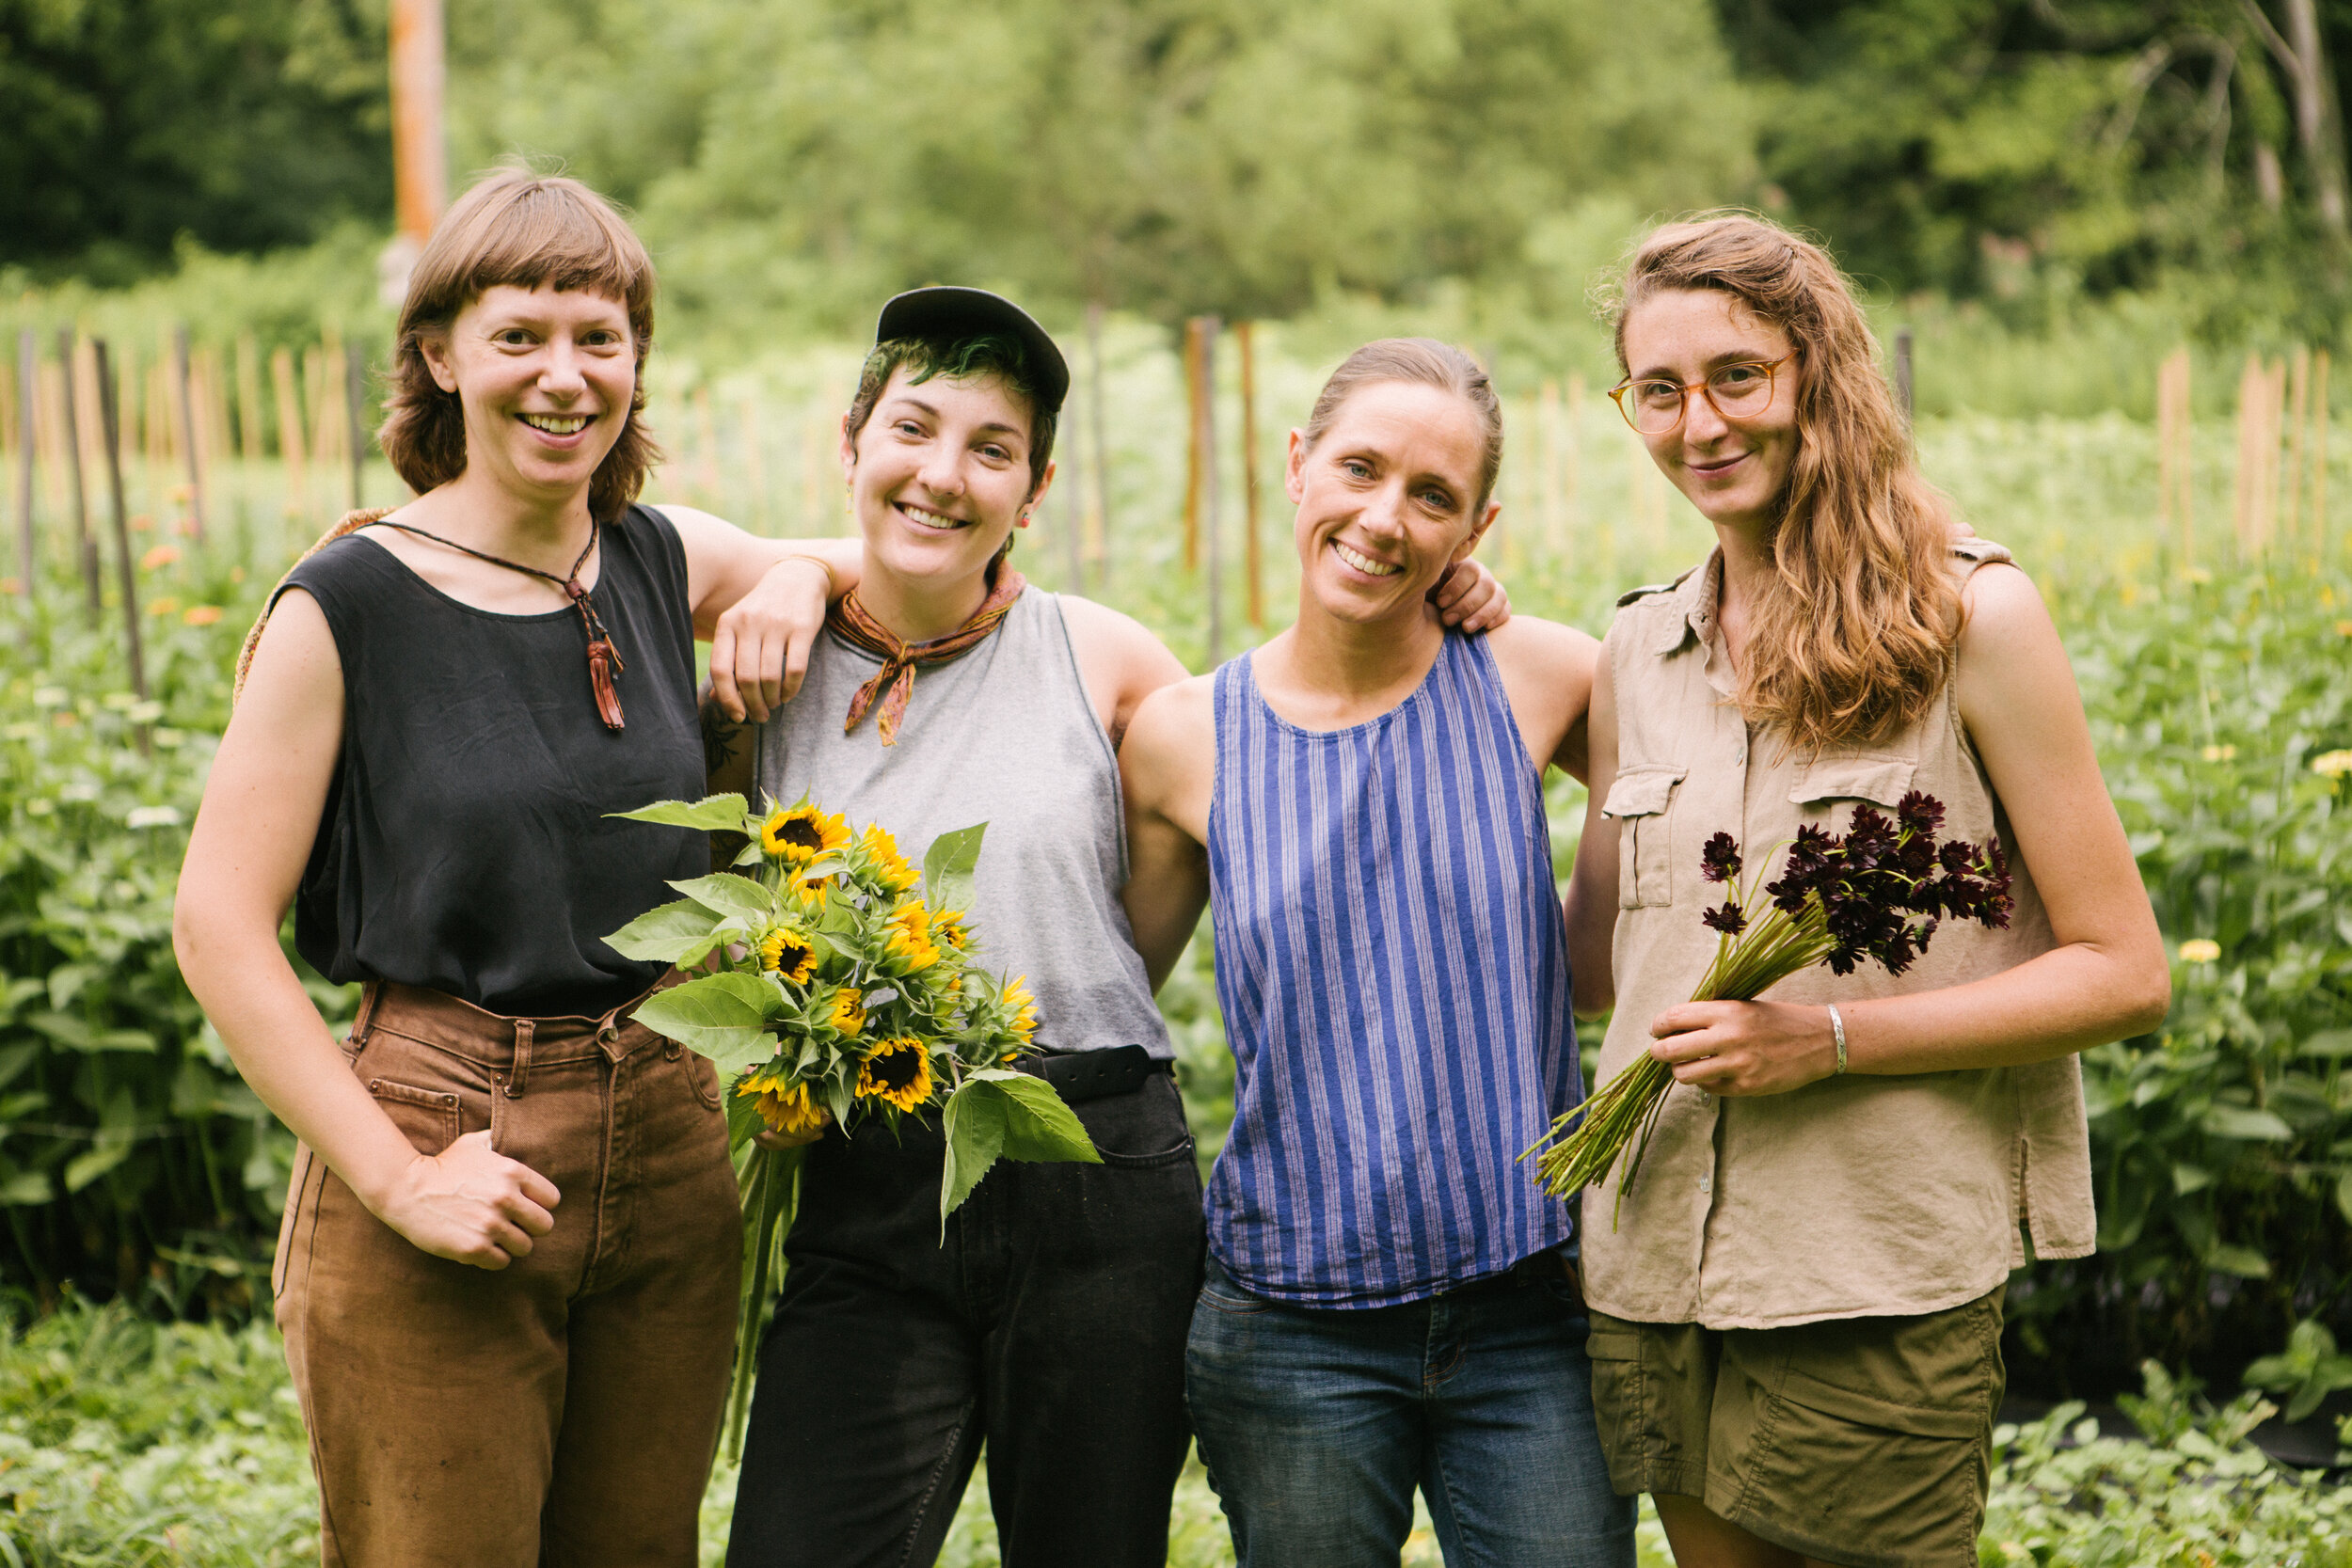 A sweet photo of our Thursday harvest team, taken from our July farm photoshoot by  Ann-Marie VanTassell .   from left, Amelia P., Samantha, Elisa, and Amelia H.